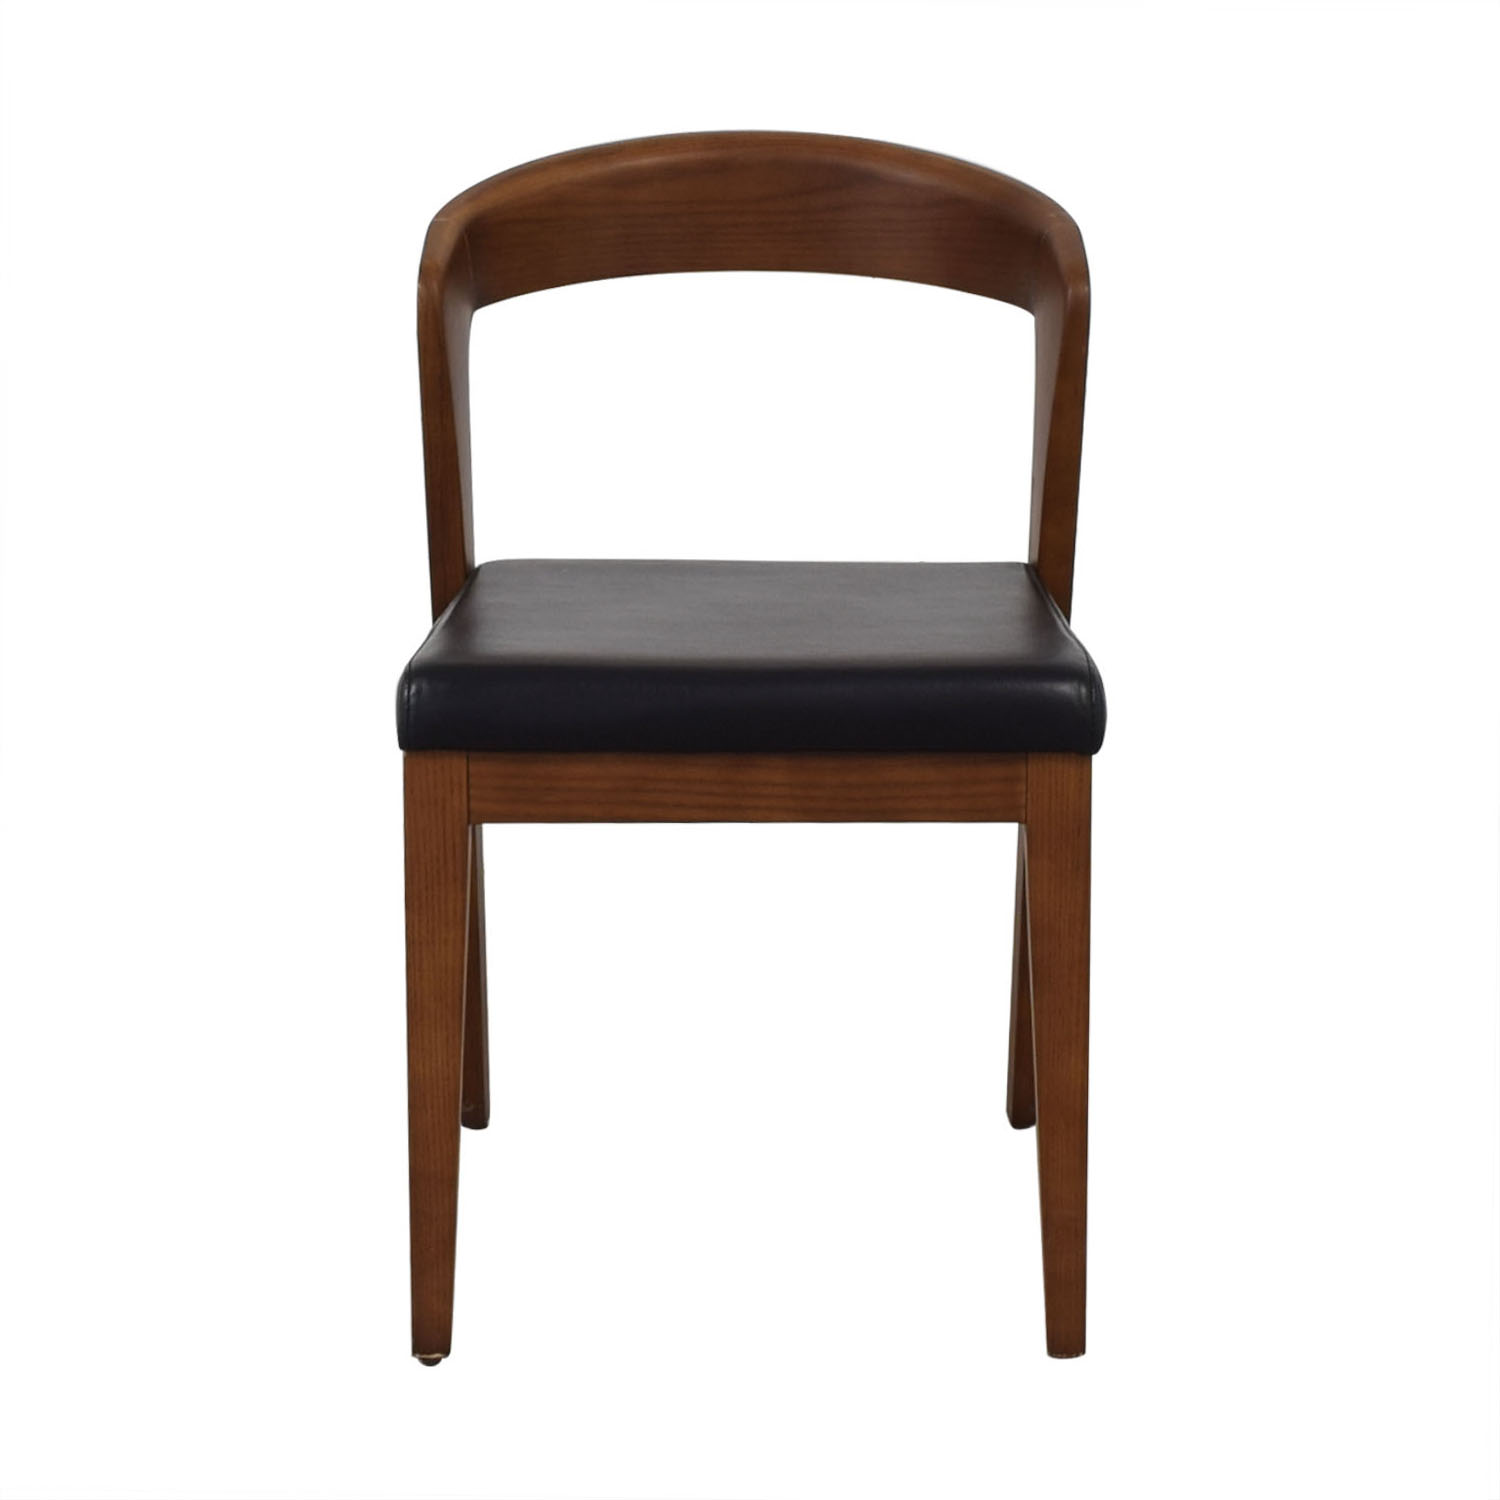 Control Brand Control Brand Mid Century Dining Chair used